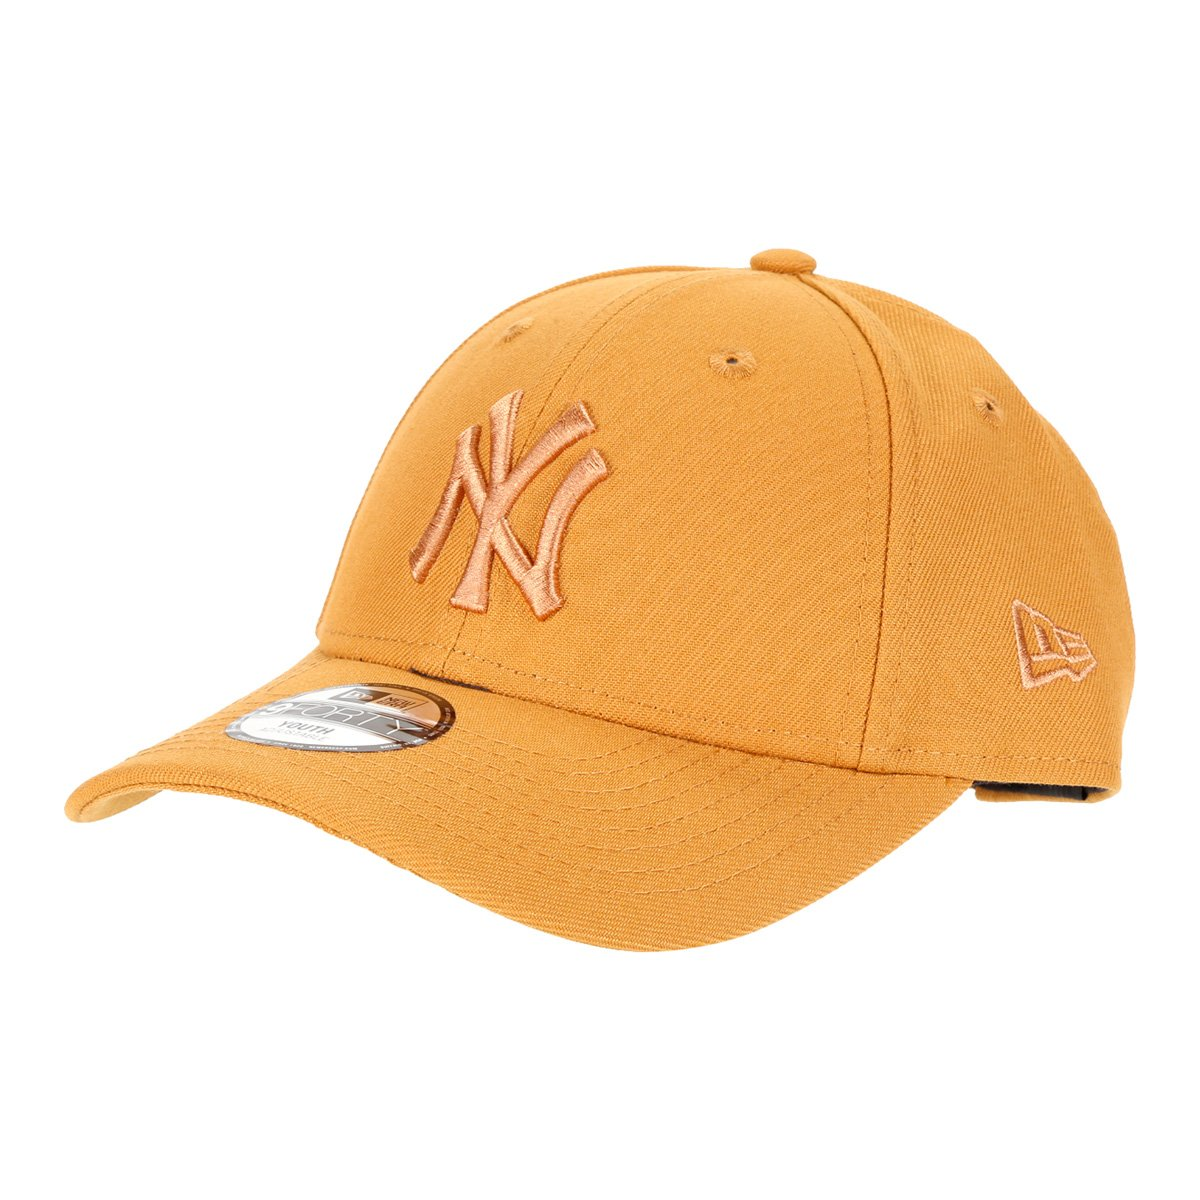 Boné Juvenil New Era Aba Curva Strapback MLB 9Forty New York Yankees Masculino